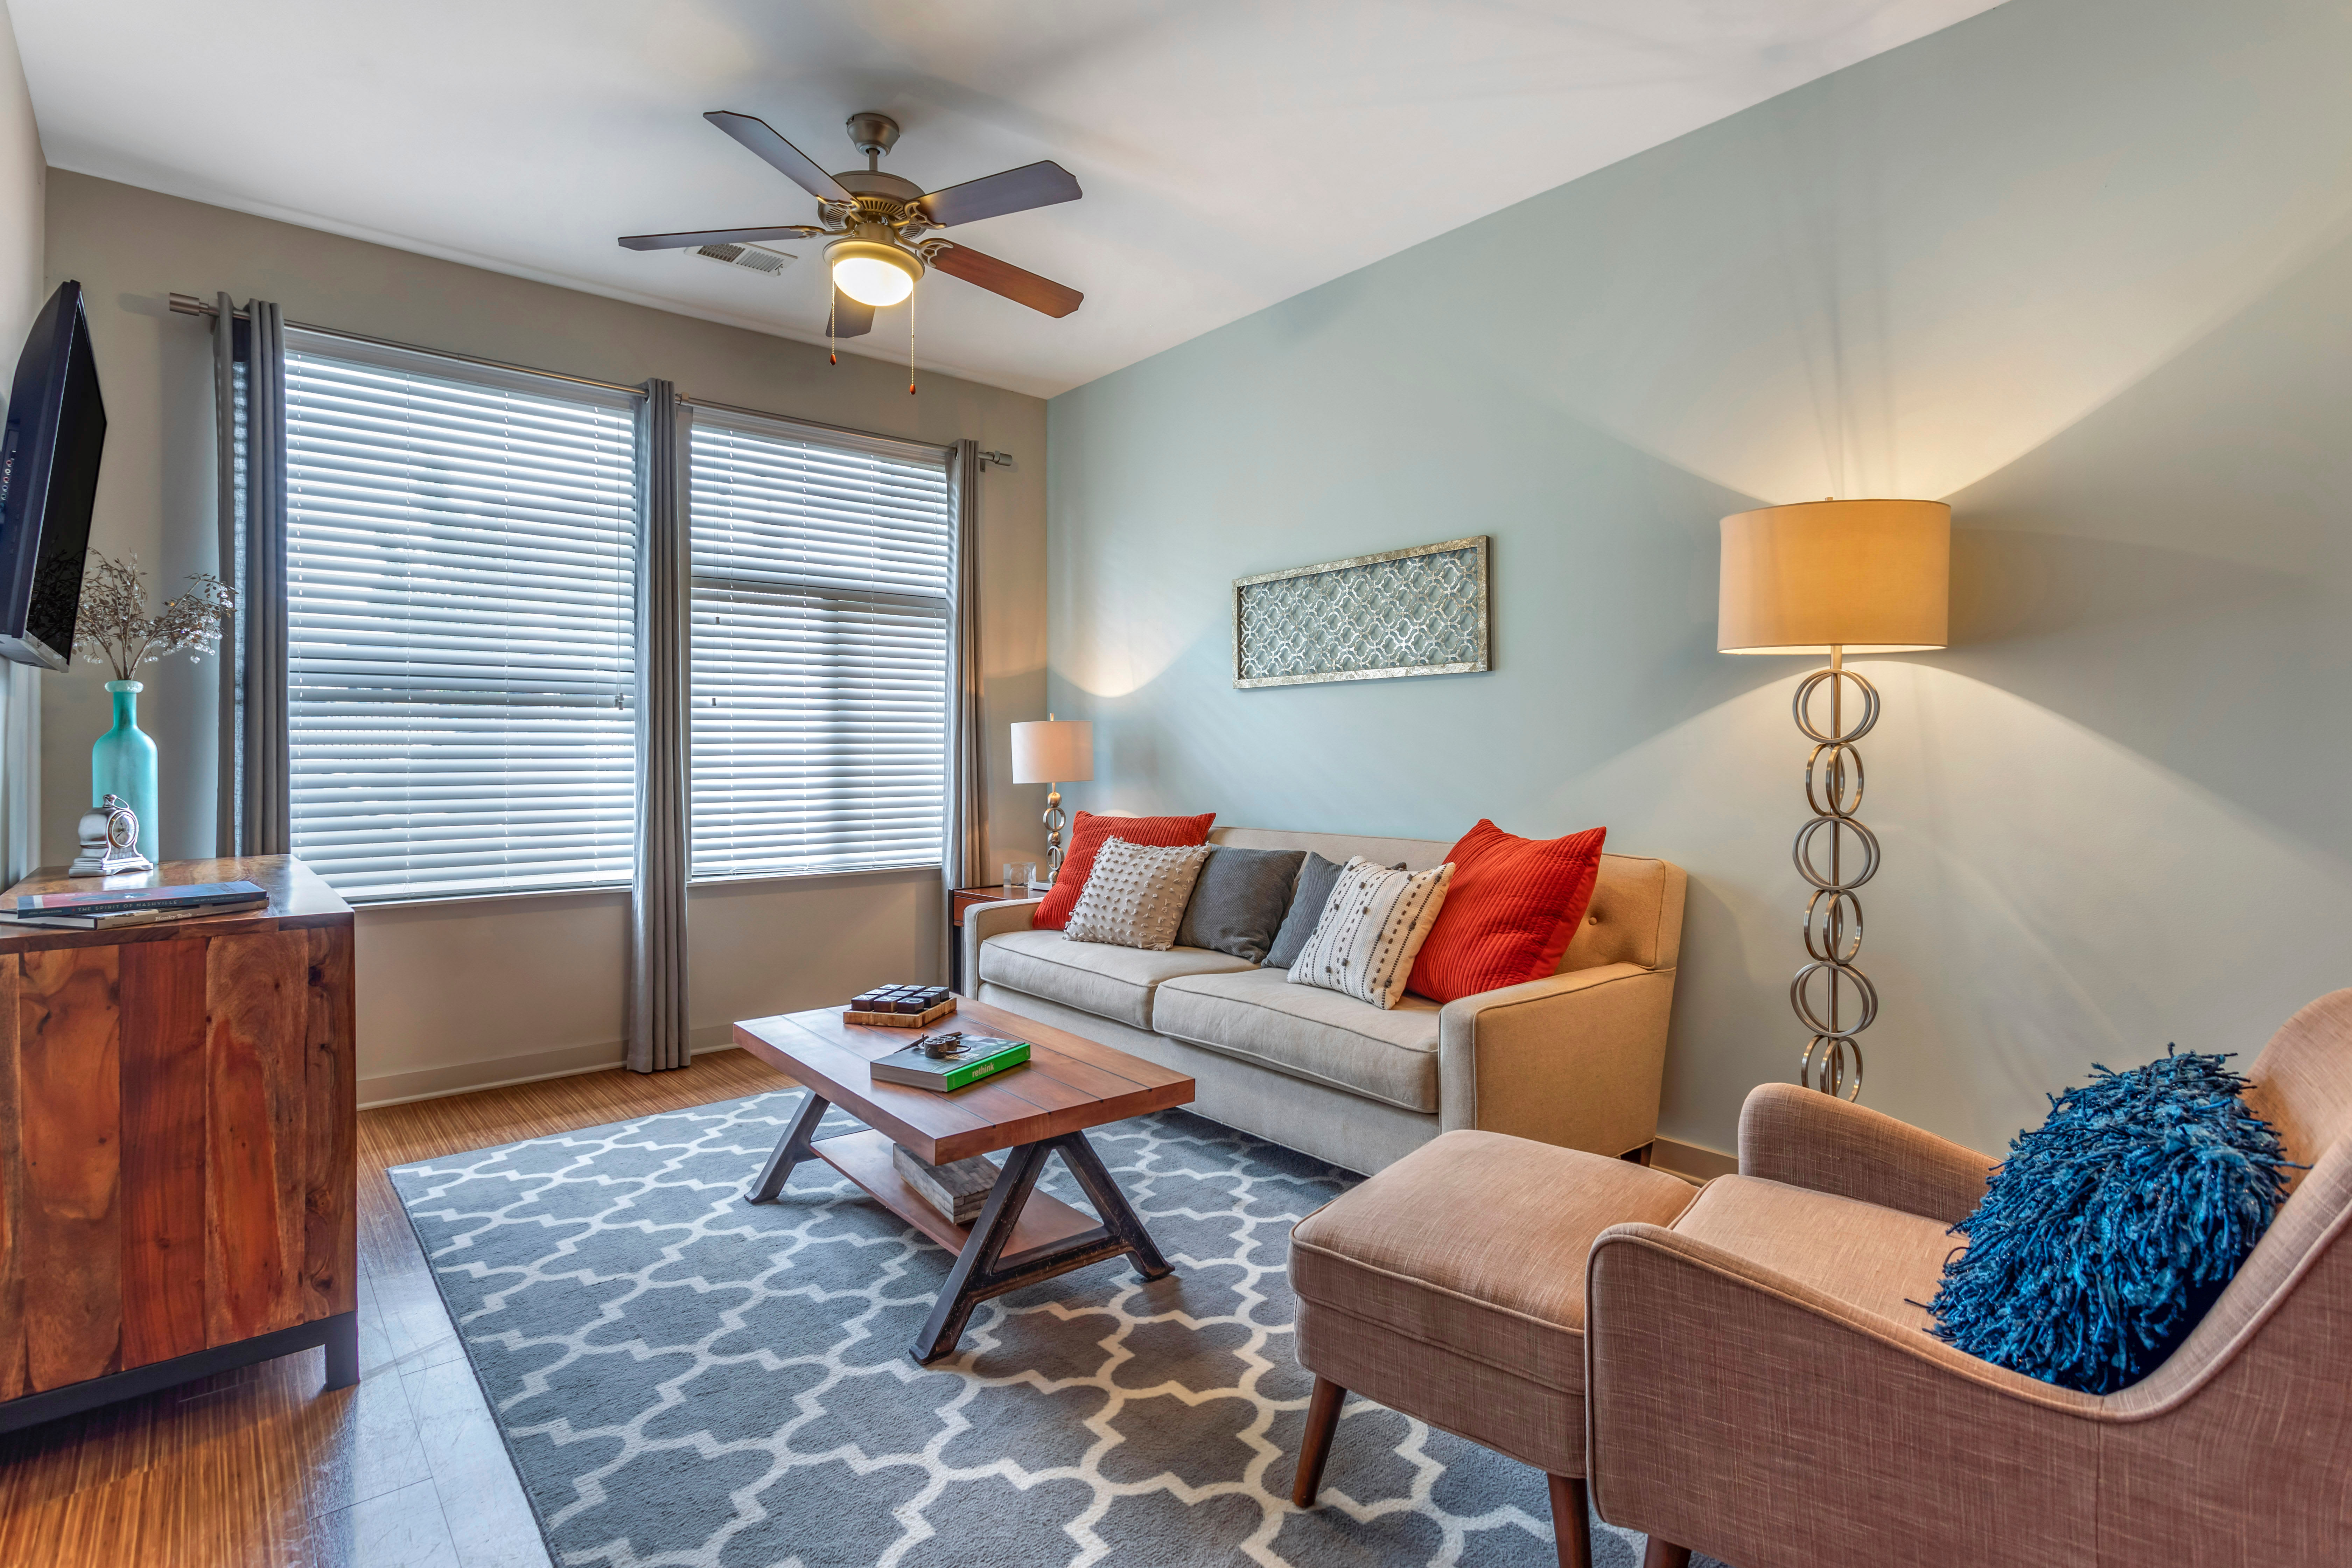 Large open-concept living space with comfortable furnishings in a model home at Olympus Midtown in Nashville, Tennessee